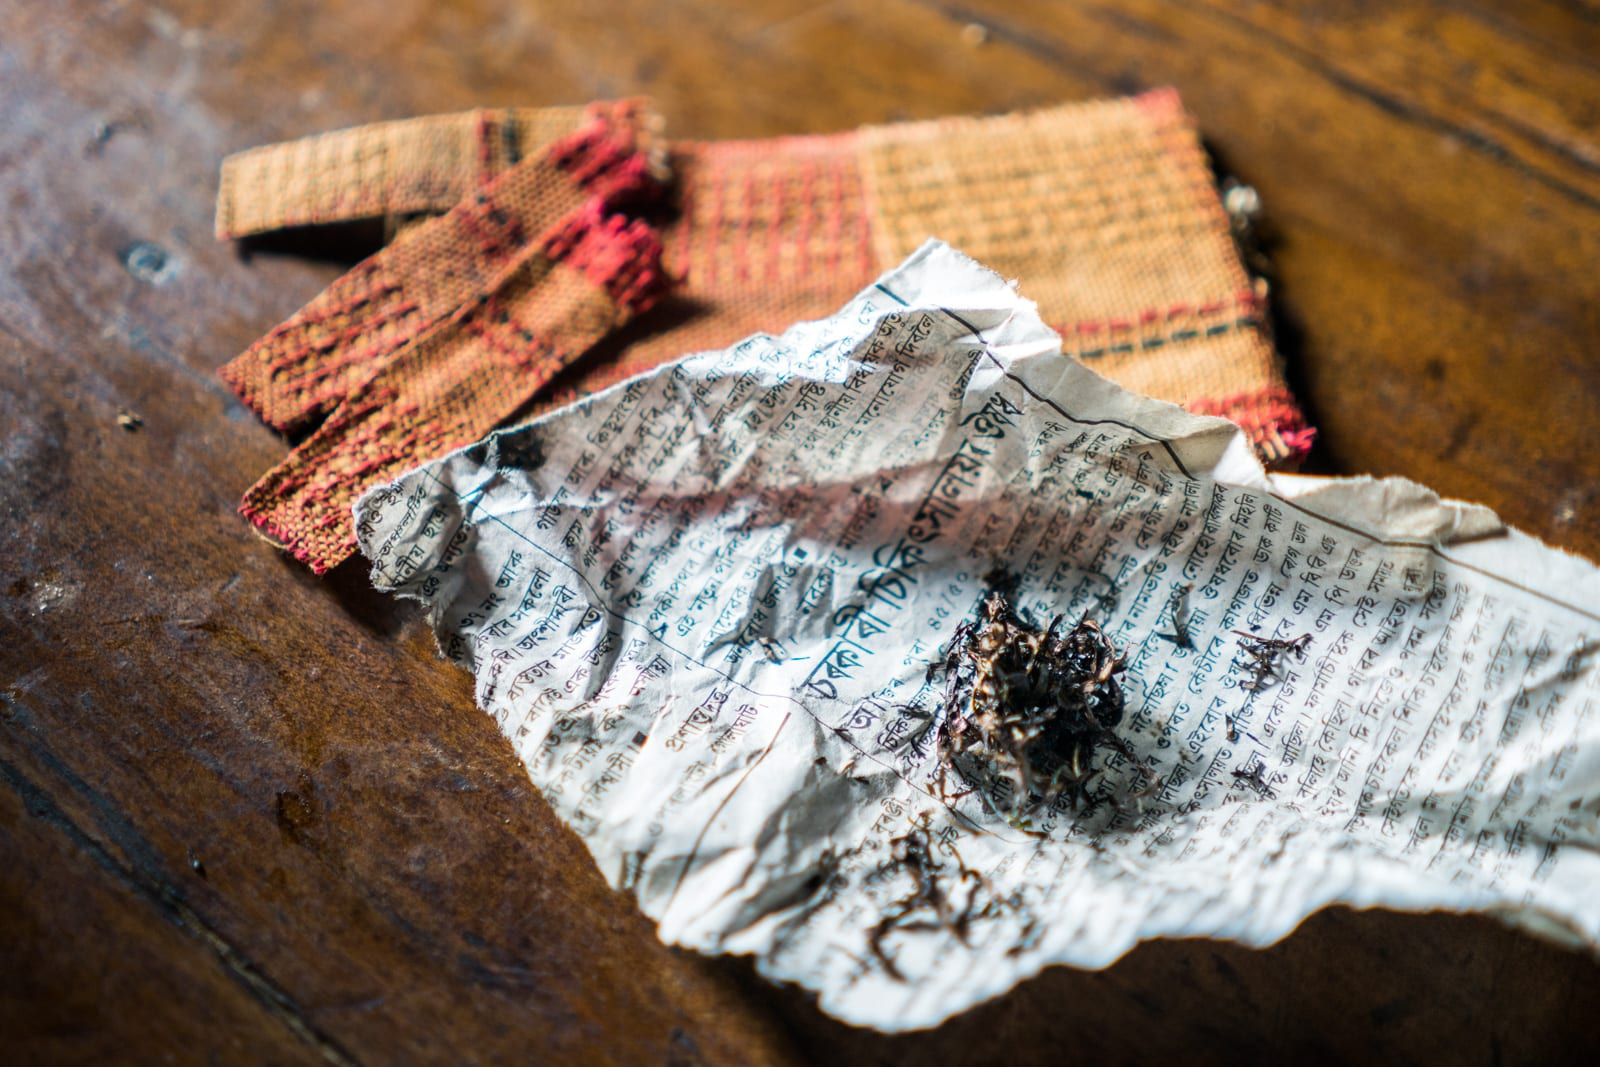 Opium and Jesus and headhunting in Longwa Village, Nagaland, India - Prepared opium for smoking and some unprepared opium strips - Lost With Purpose